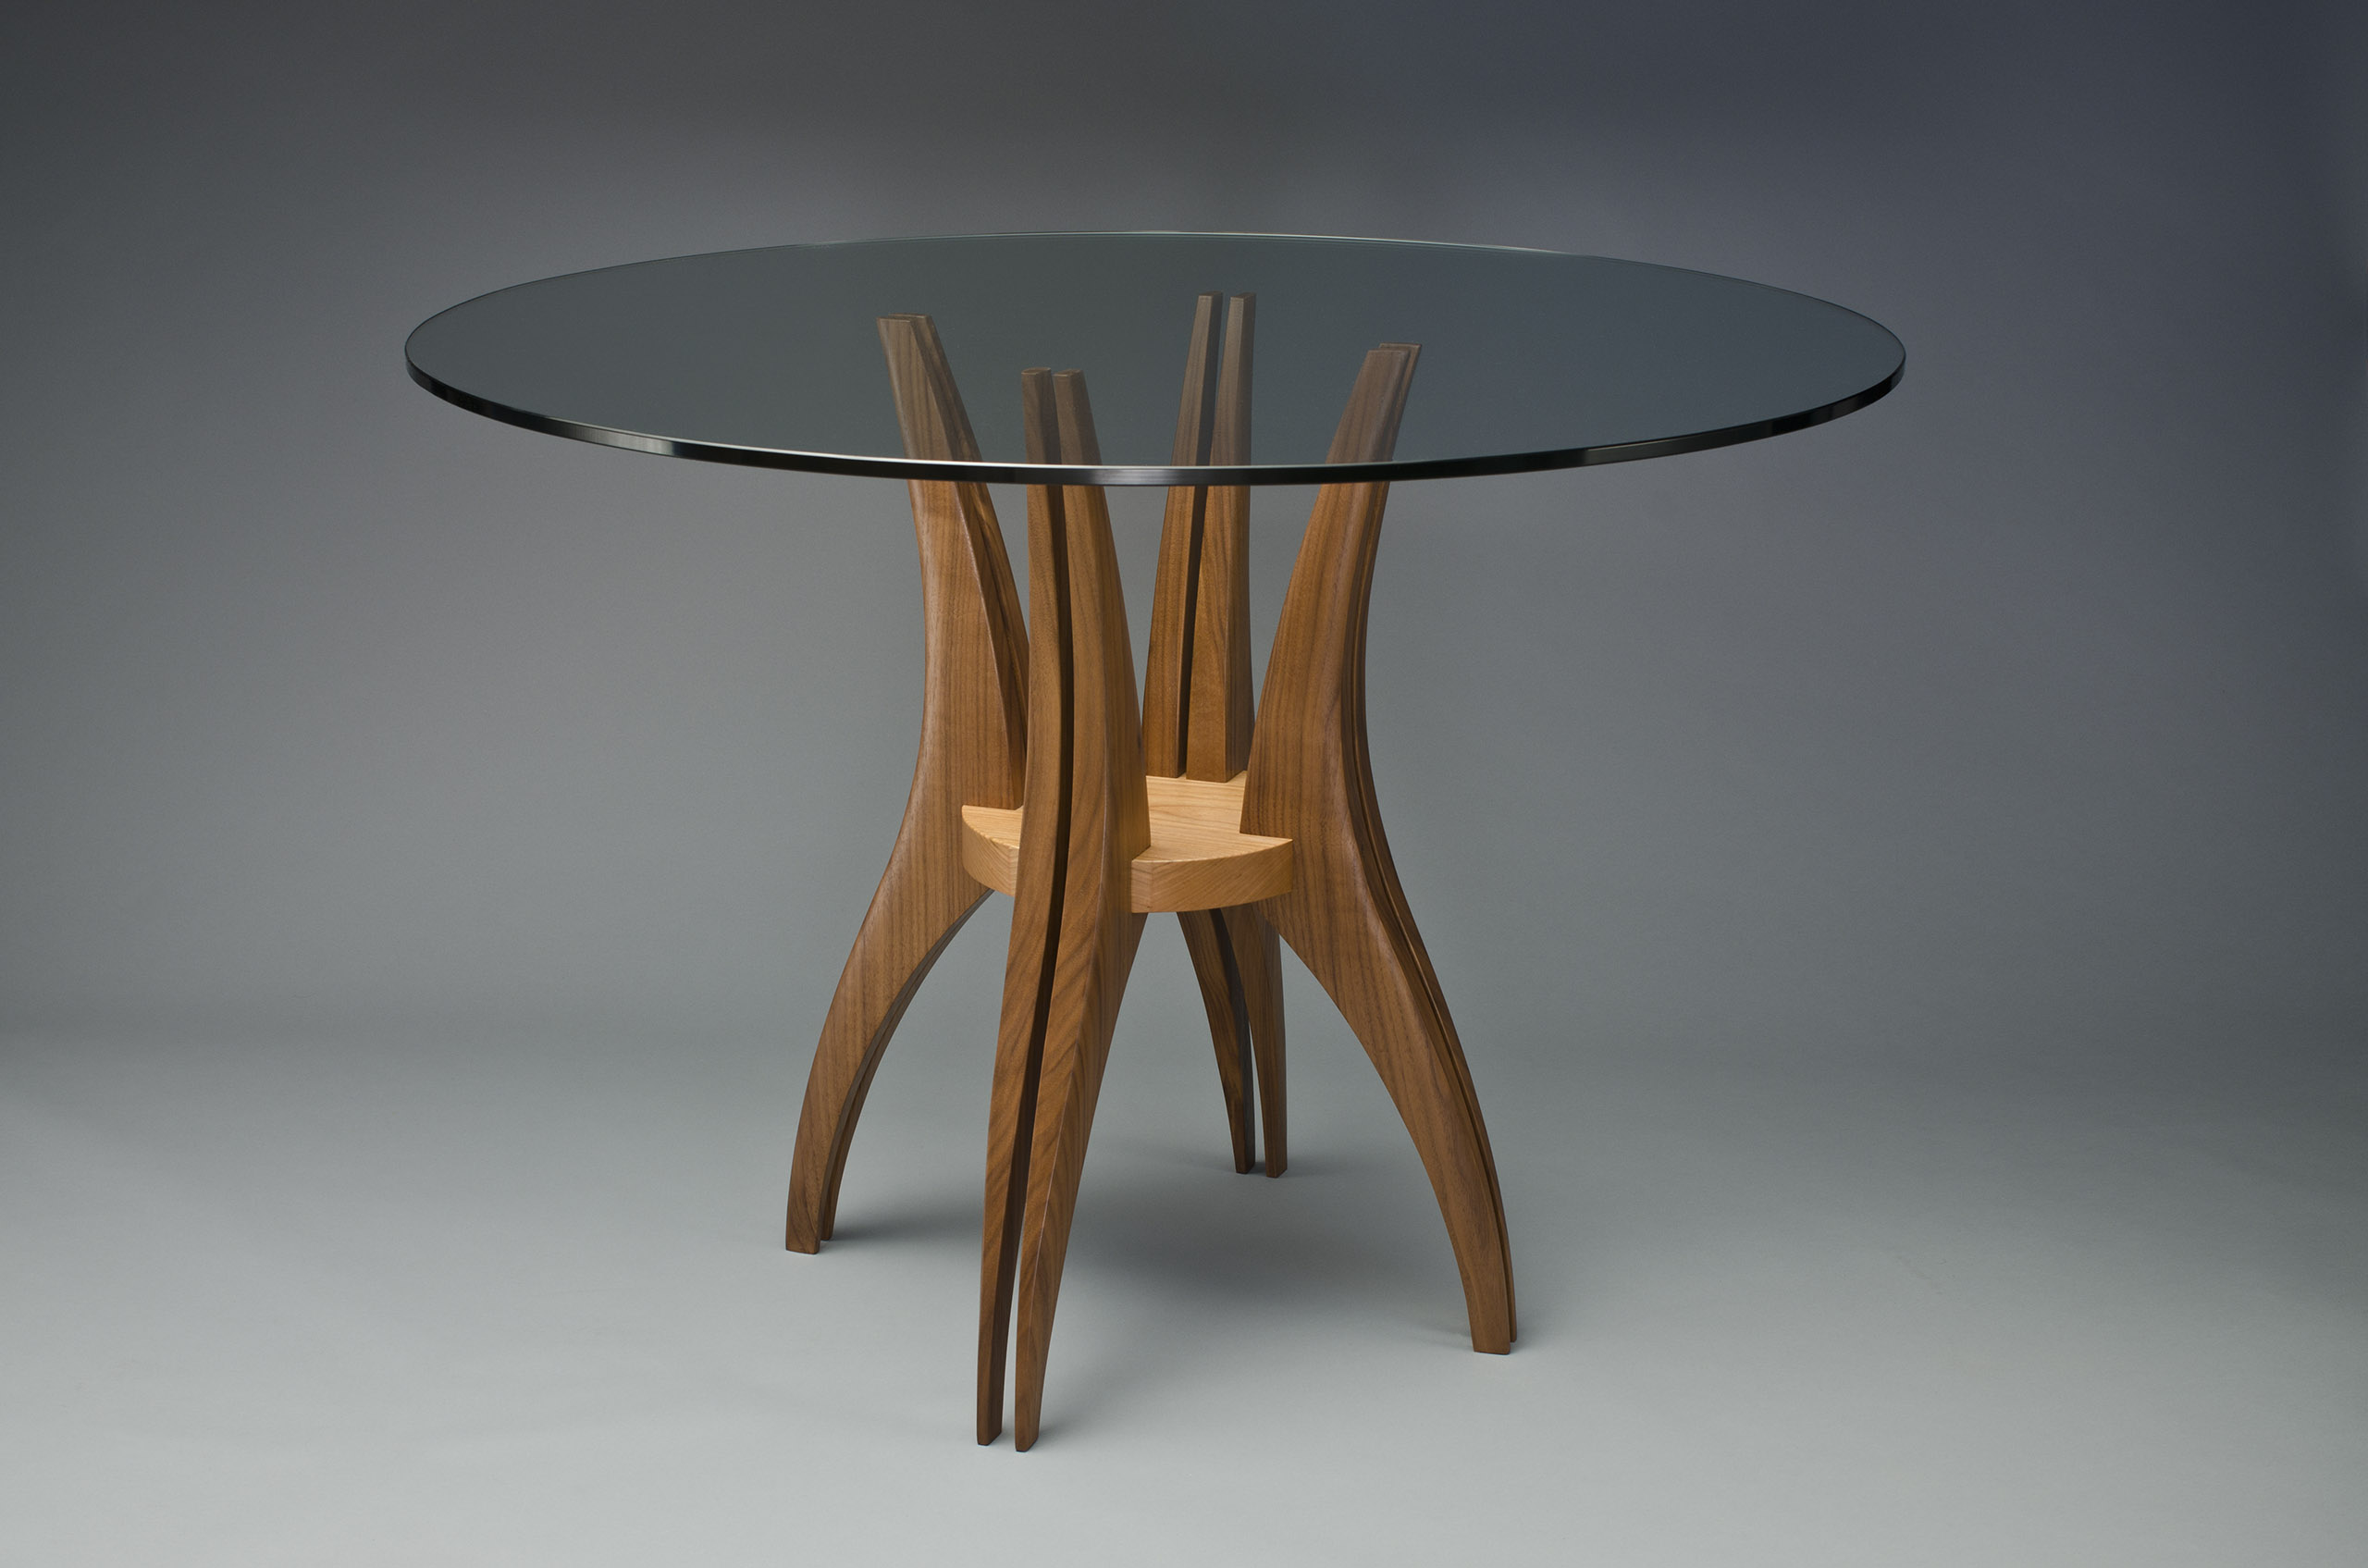 Cafe Tables Gazelle Cafe Table Hardwood And Glass Dining Room Table